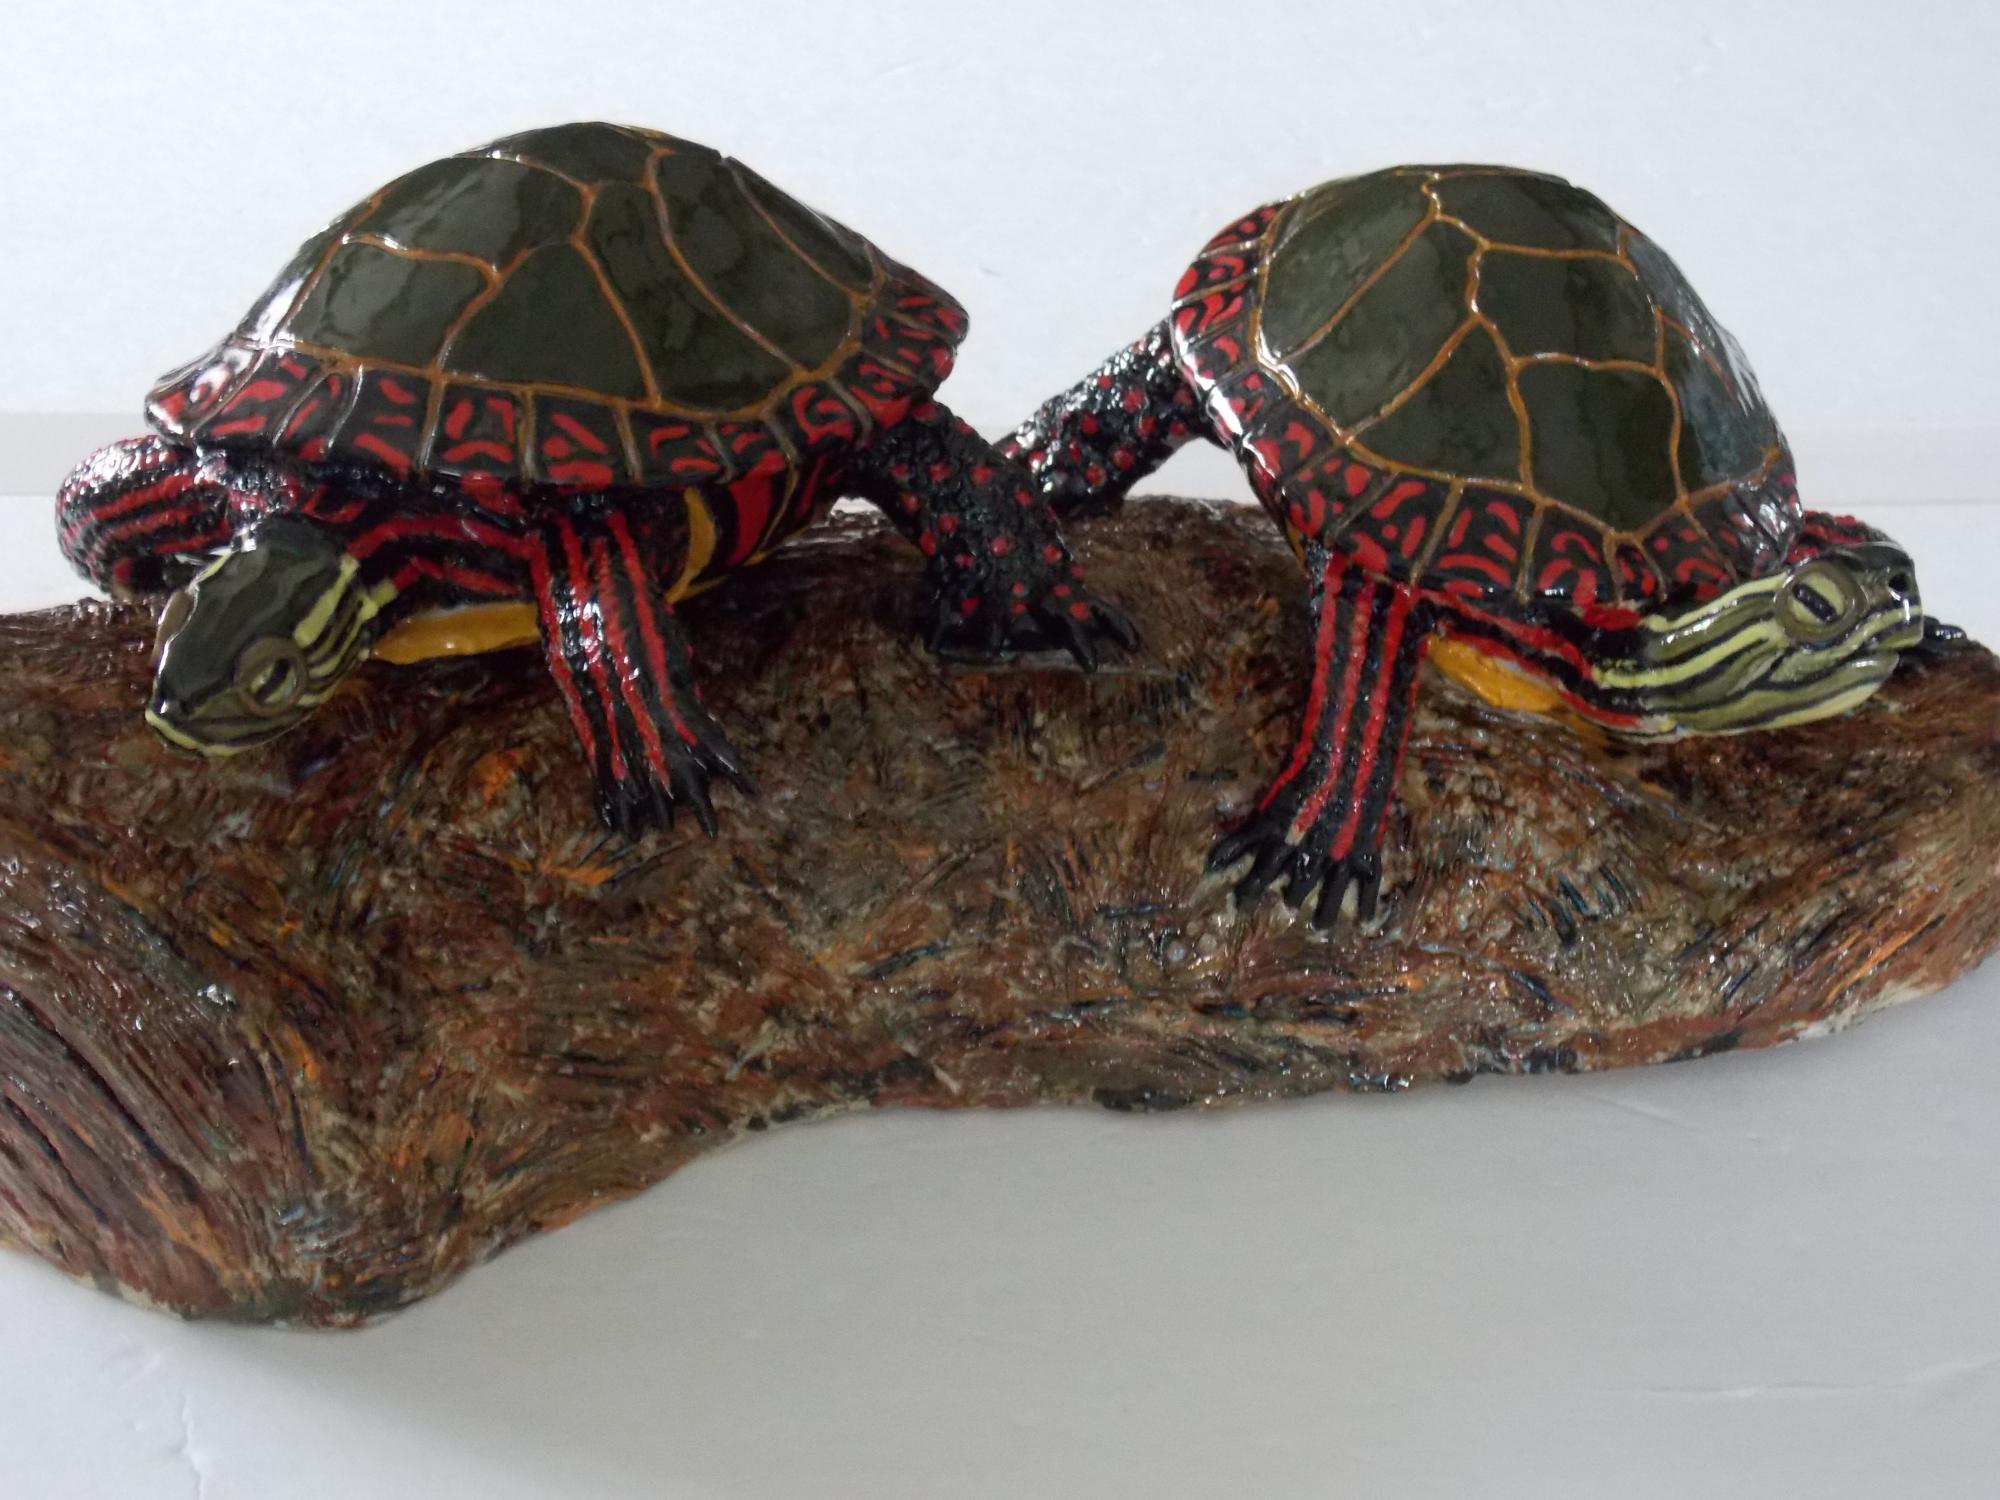 Painted_turtles_on_log__Muhich_2016___cone_6_ceramic__18_x_9_x_8_inches.JPG